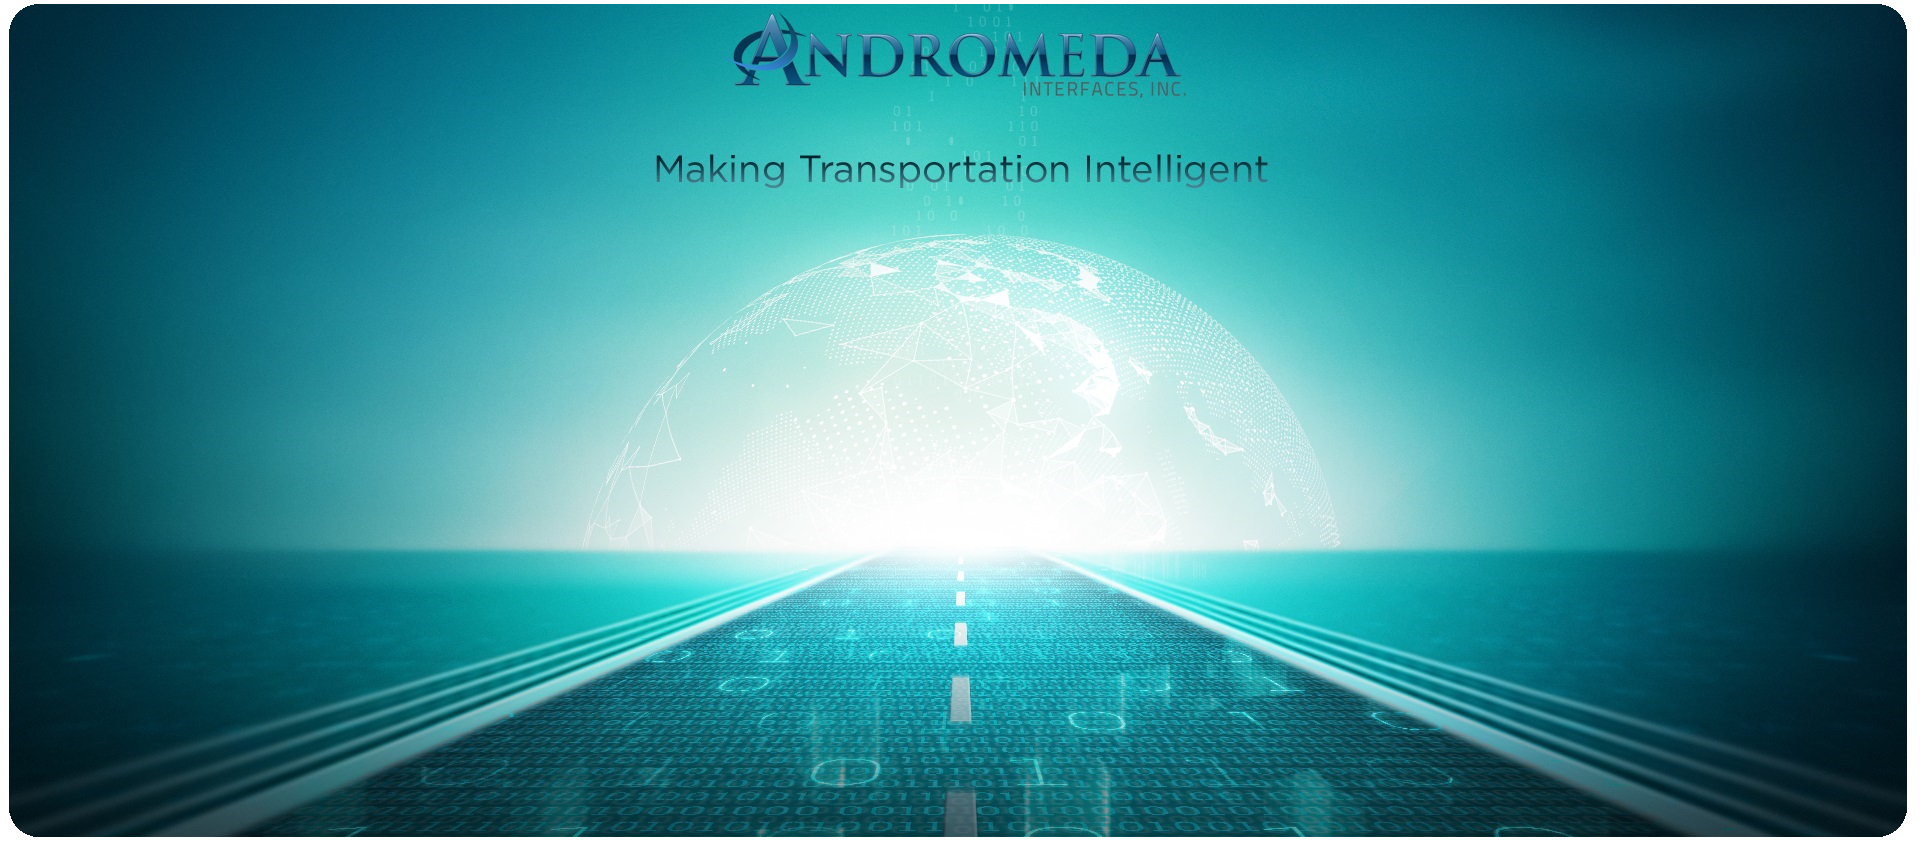 Andromeda Interfaces Advanced Display Interface Solutions Human Skin As A Touch Screen At We Offer Machine Hmi Displays That Are Essential For The Electrification Of Transportation And Equipment